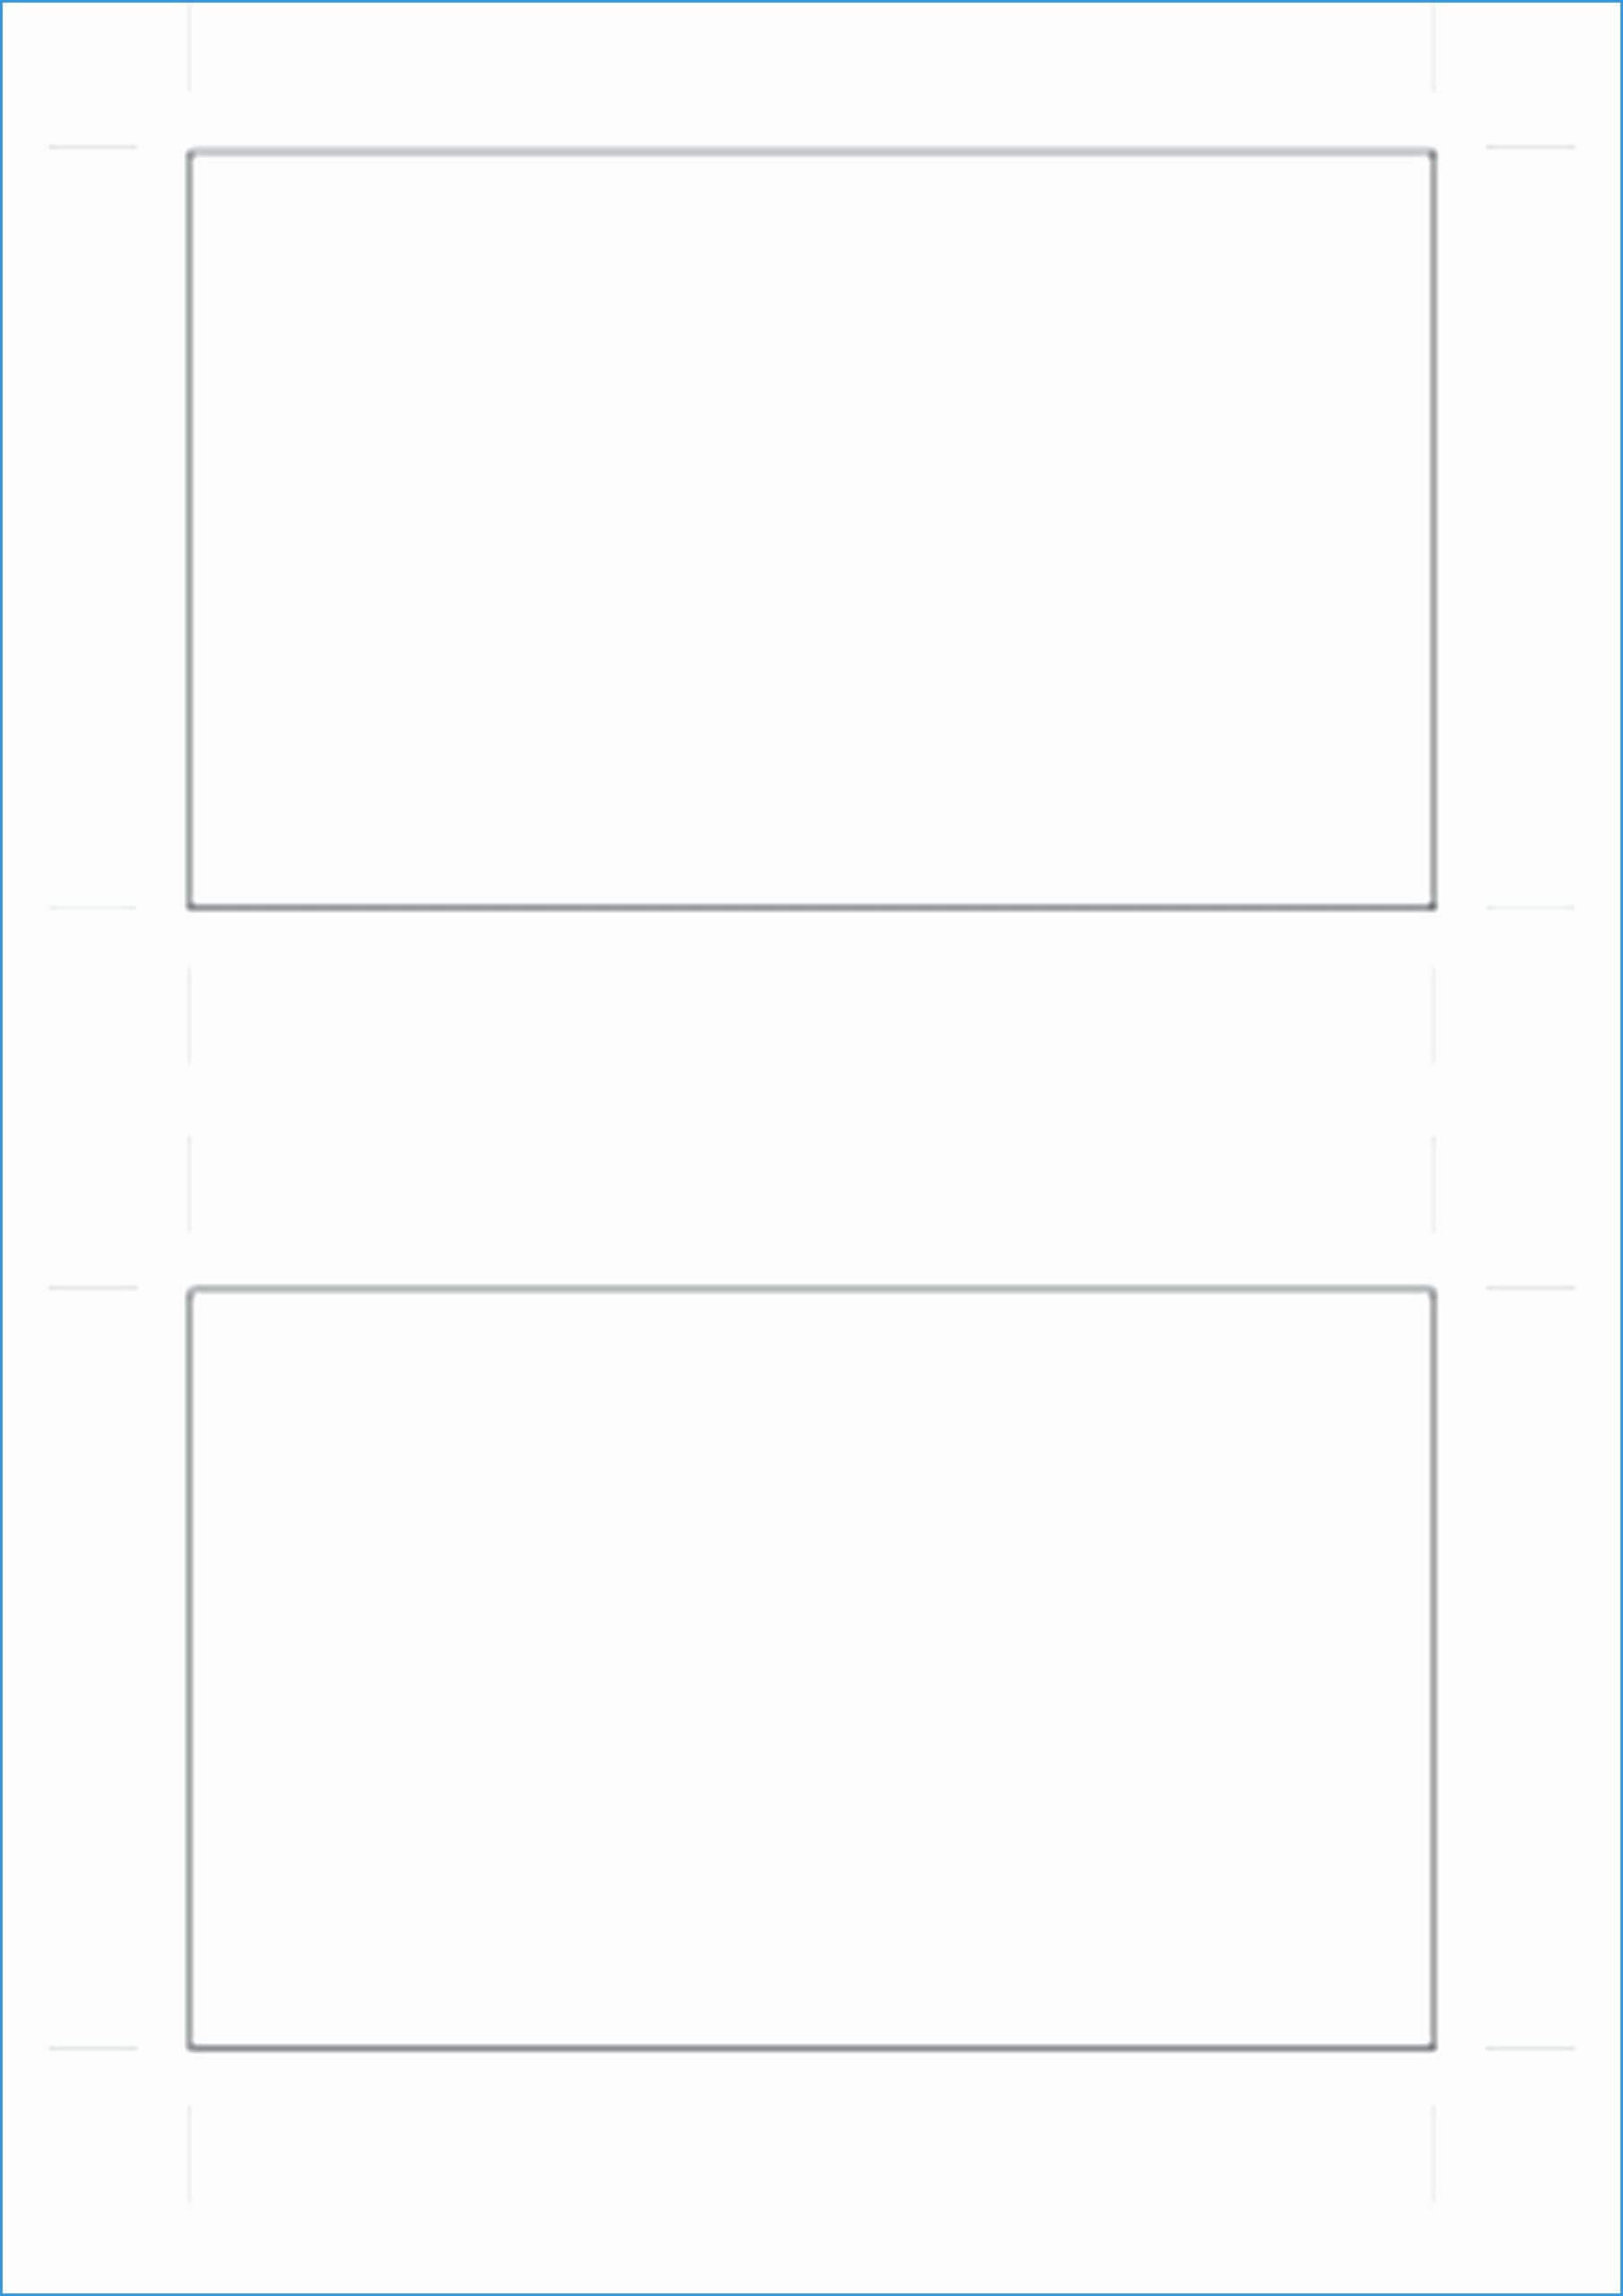 032 Blank Business Card Template Free Templates For Word With Regard To Plain Business Card Template Microsoft Word